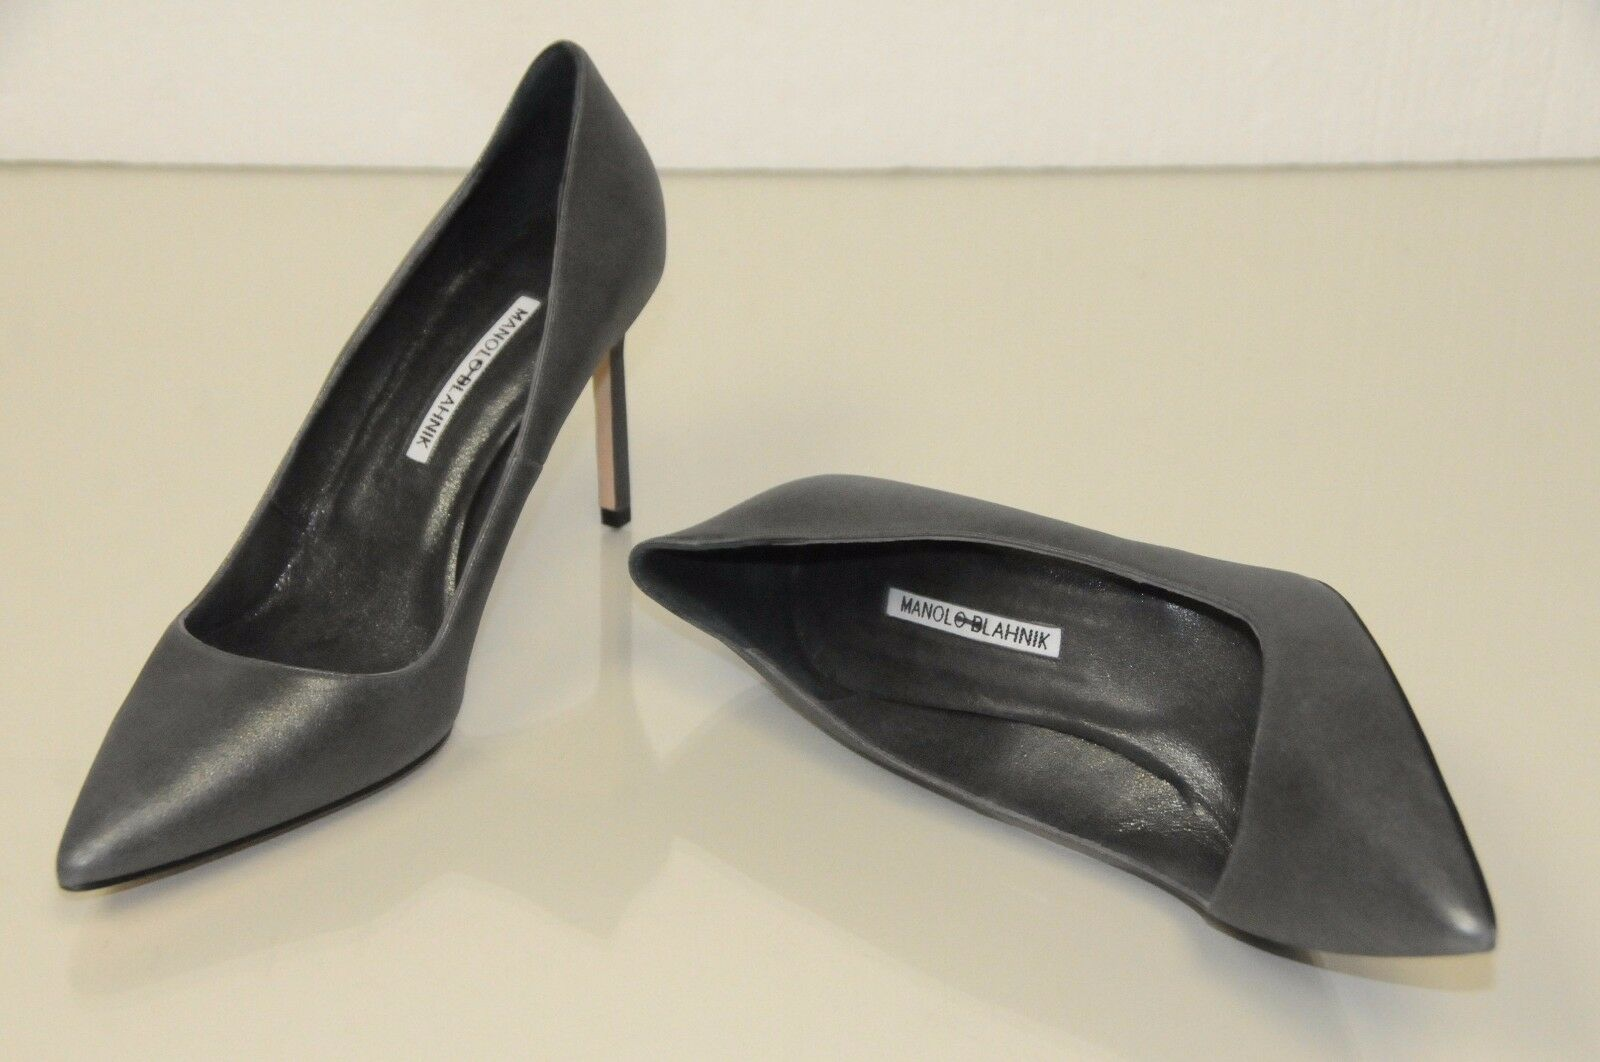 New Manolo Manolo Manolo Blahnik BB 90 shimmery Grey Silver Suede d leather shoes  Pumps 40.5 d4b603